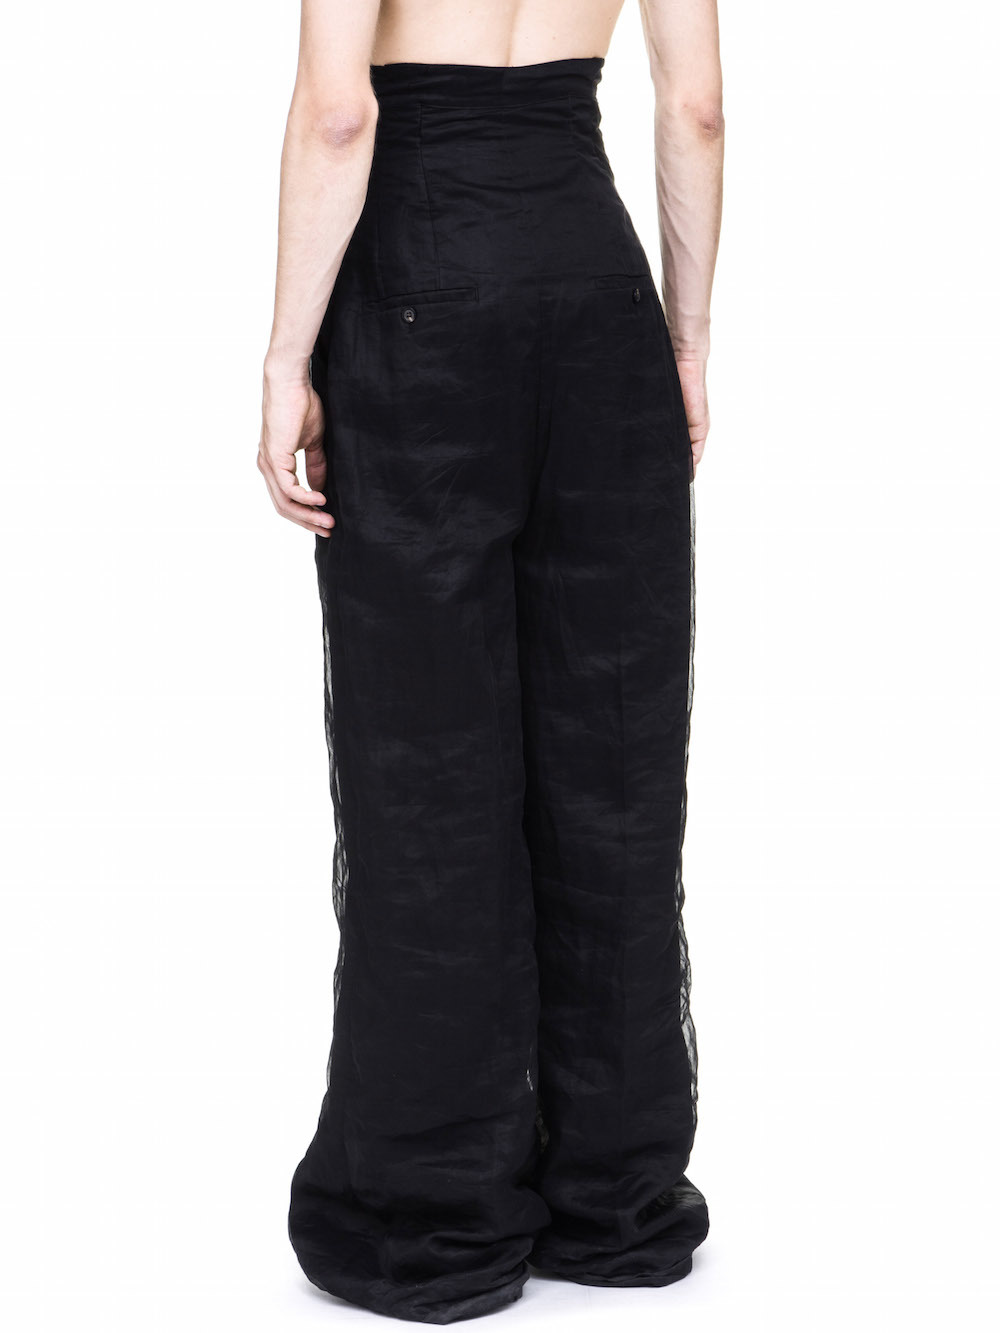 RICK OWENS OFF-THE-RUNWAY DIRT TROUSERS IN BLACK COTTON ORGANDIS